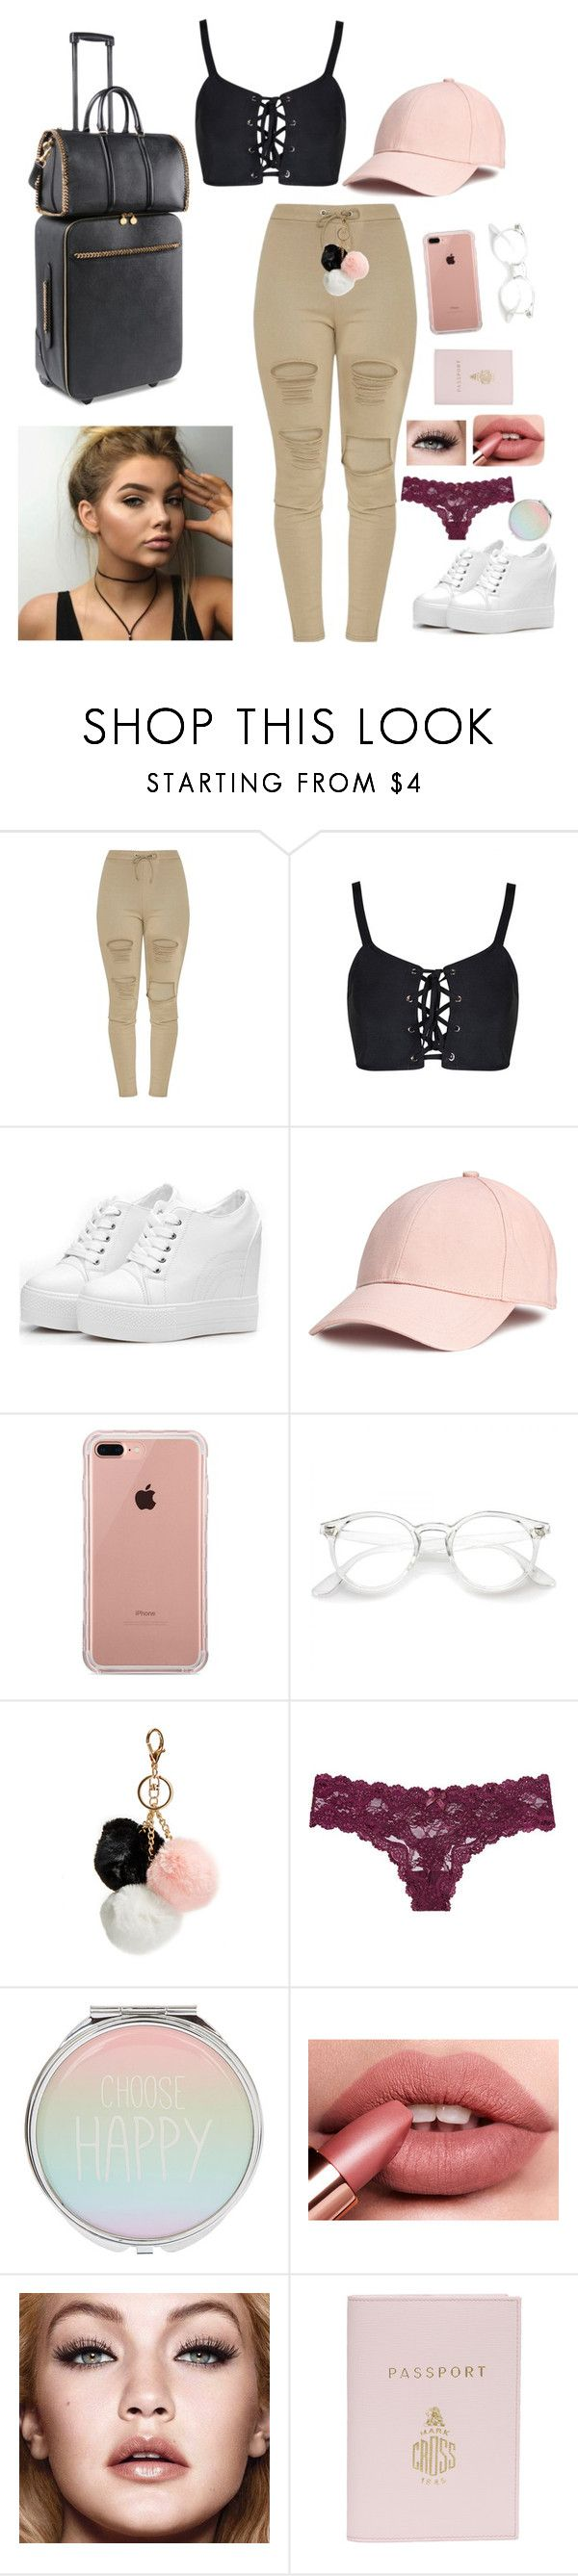 """We ain't got forever and ever"" by thelovelye ❤ liked on Polyvore featuring Belkin, GUESS, Victoria's Secret, Mark Cross and STELLA McCARTNEY"